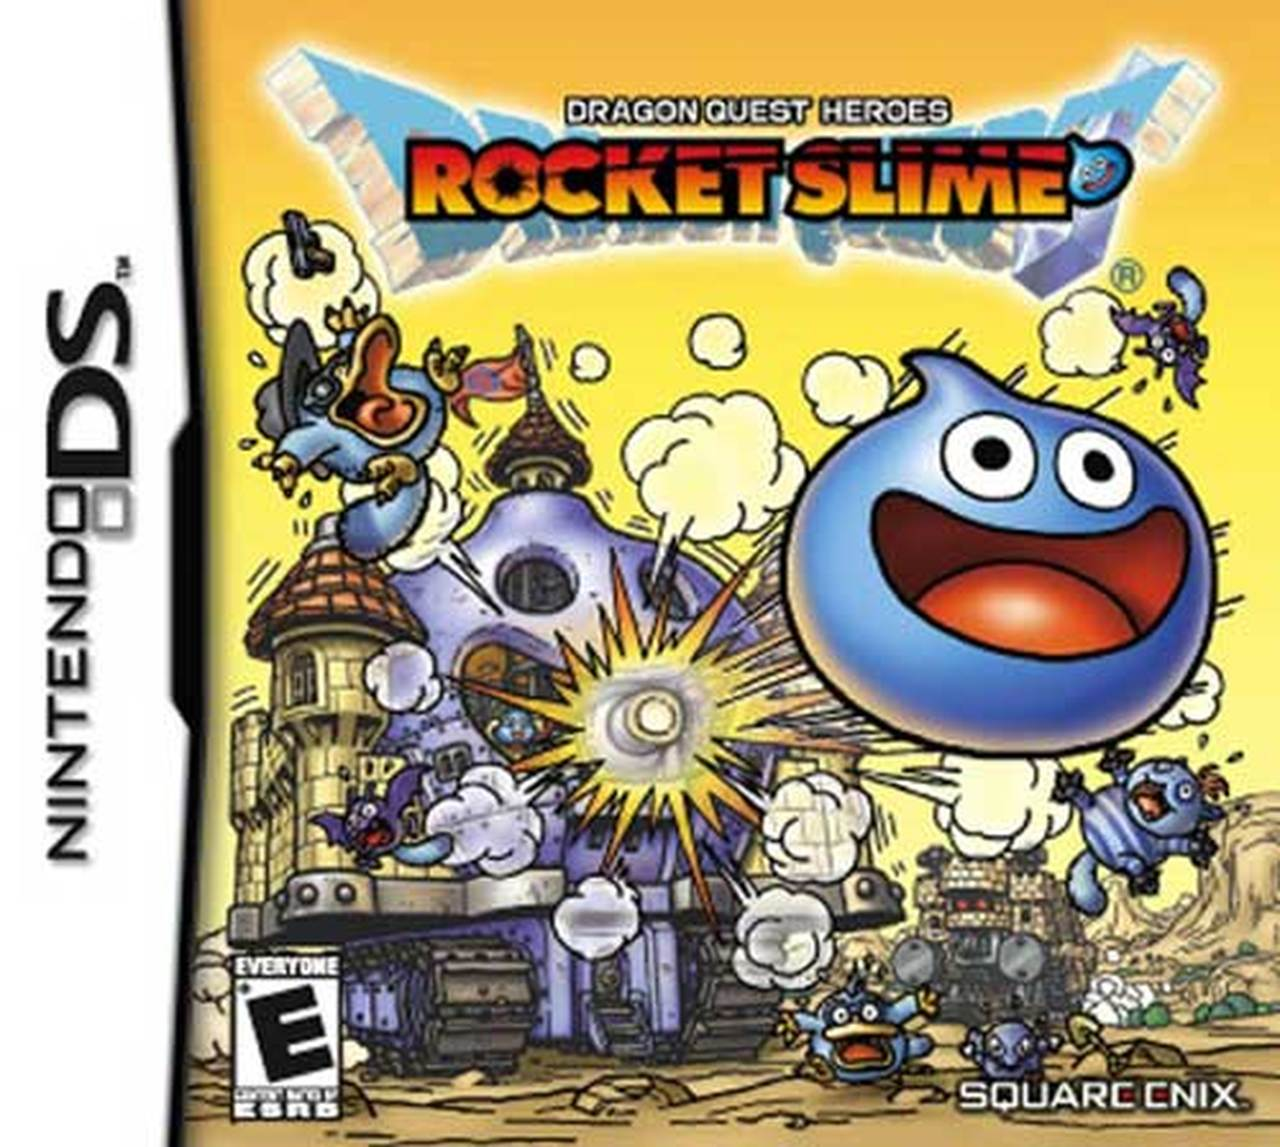 Dragon Quest Heroes Rocket Slime facts and statistics